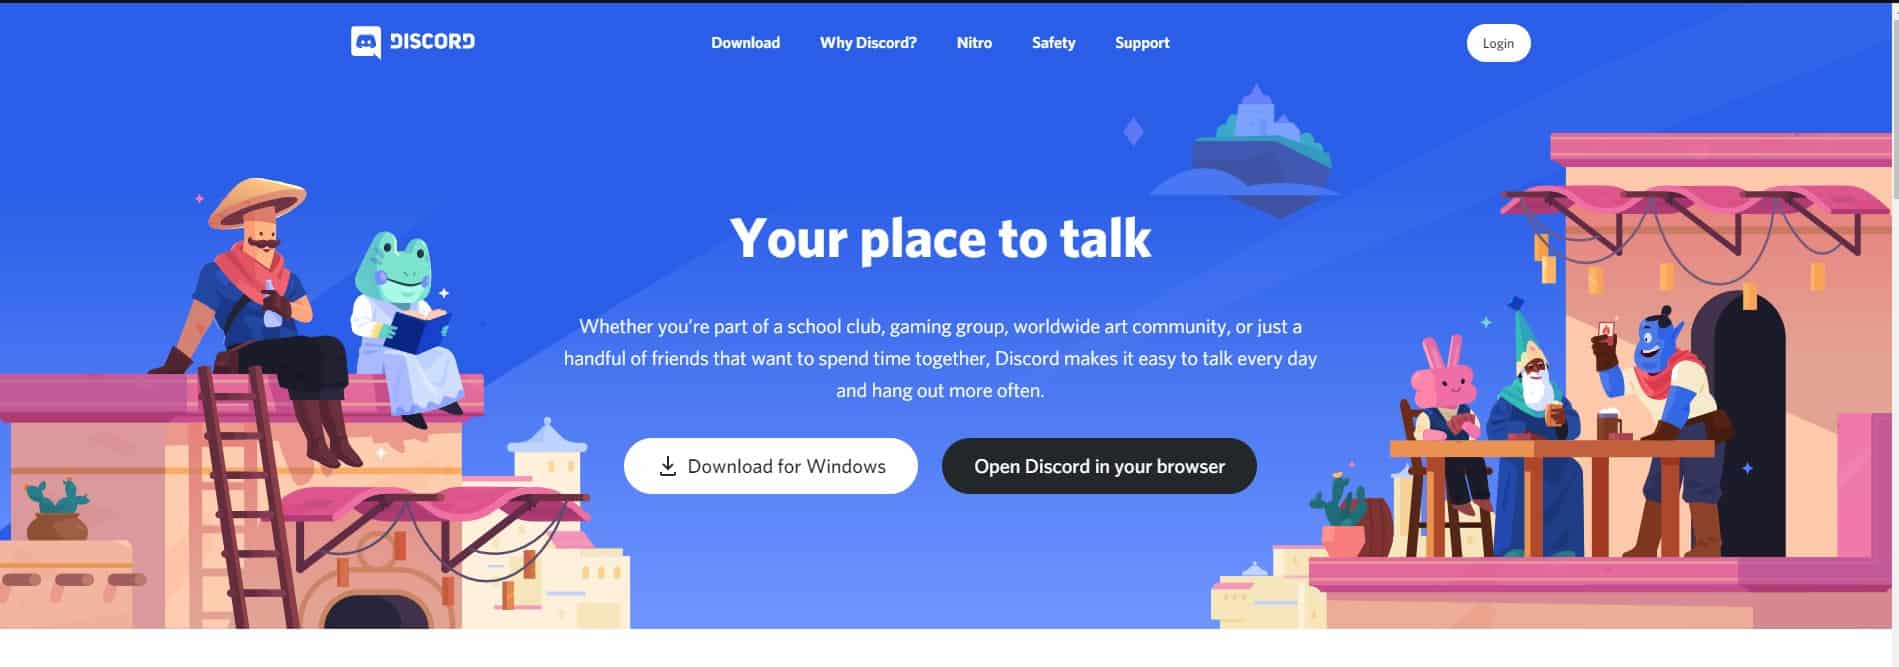 How to download the latest version of Discord.